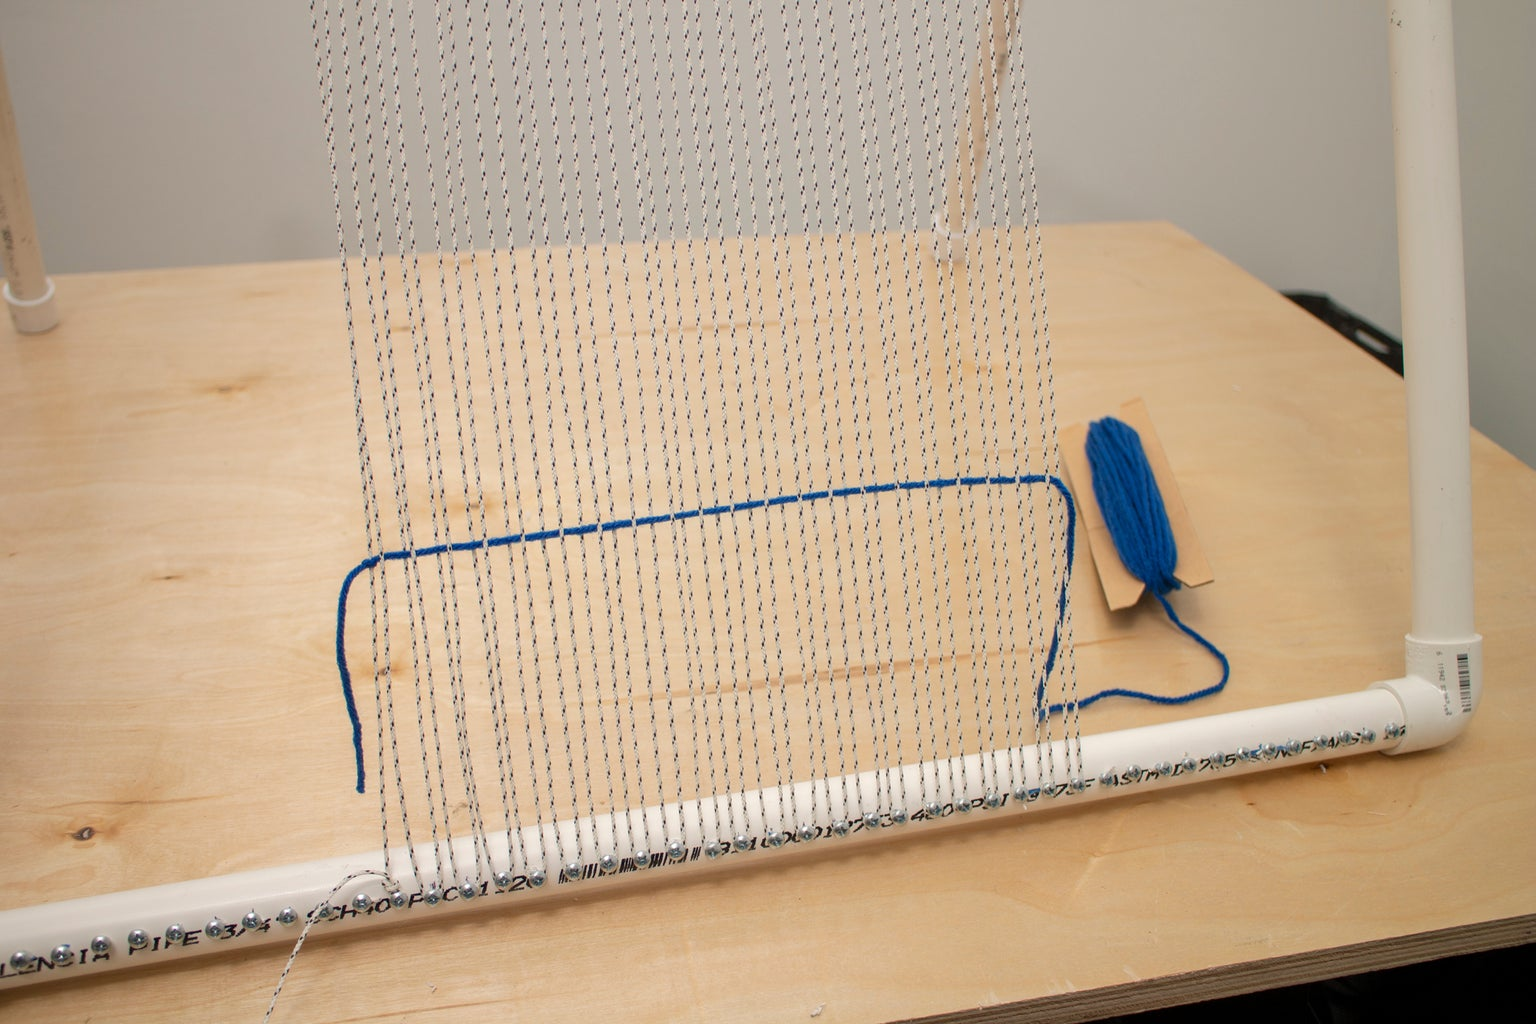 Start to Weave!